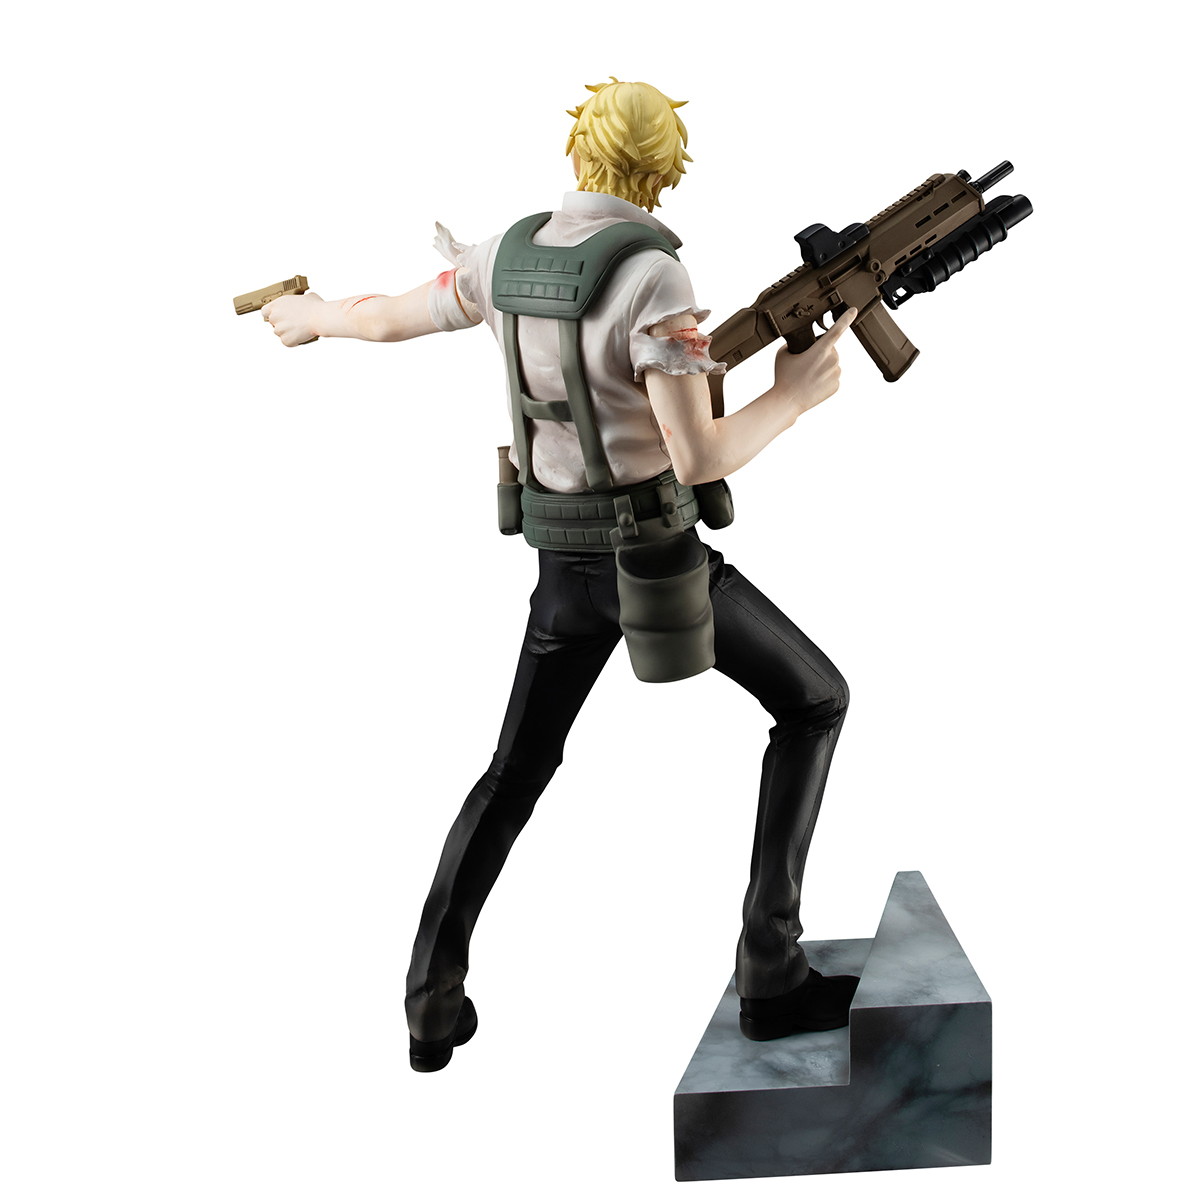 Ash Lynx Banana Fish GEM Series Figure